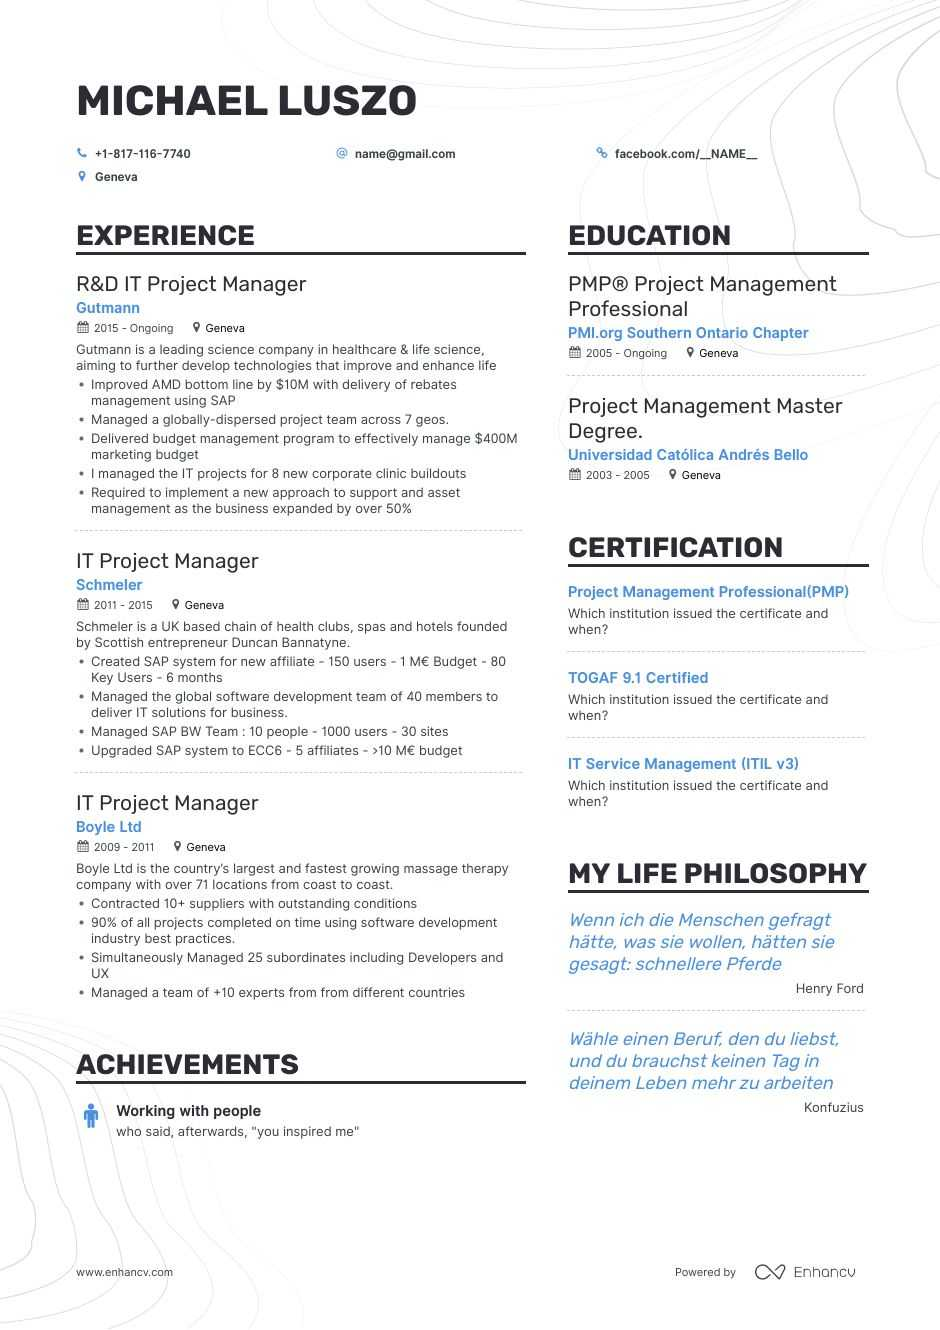 it project manager resume examples and skills you need to get hired implementation Resume Implementation Project Manager Resume